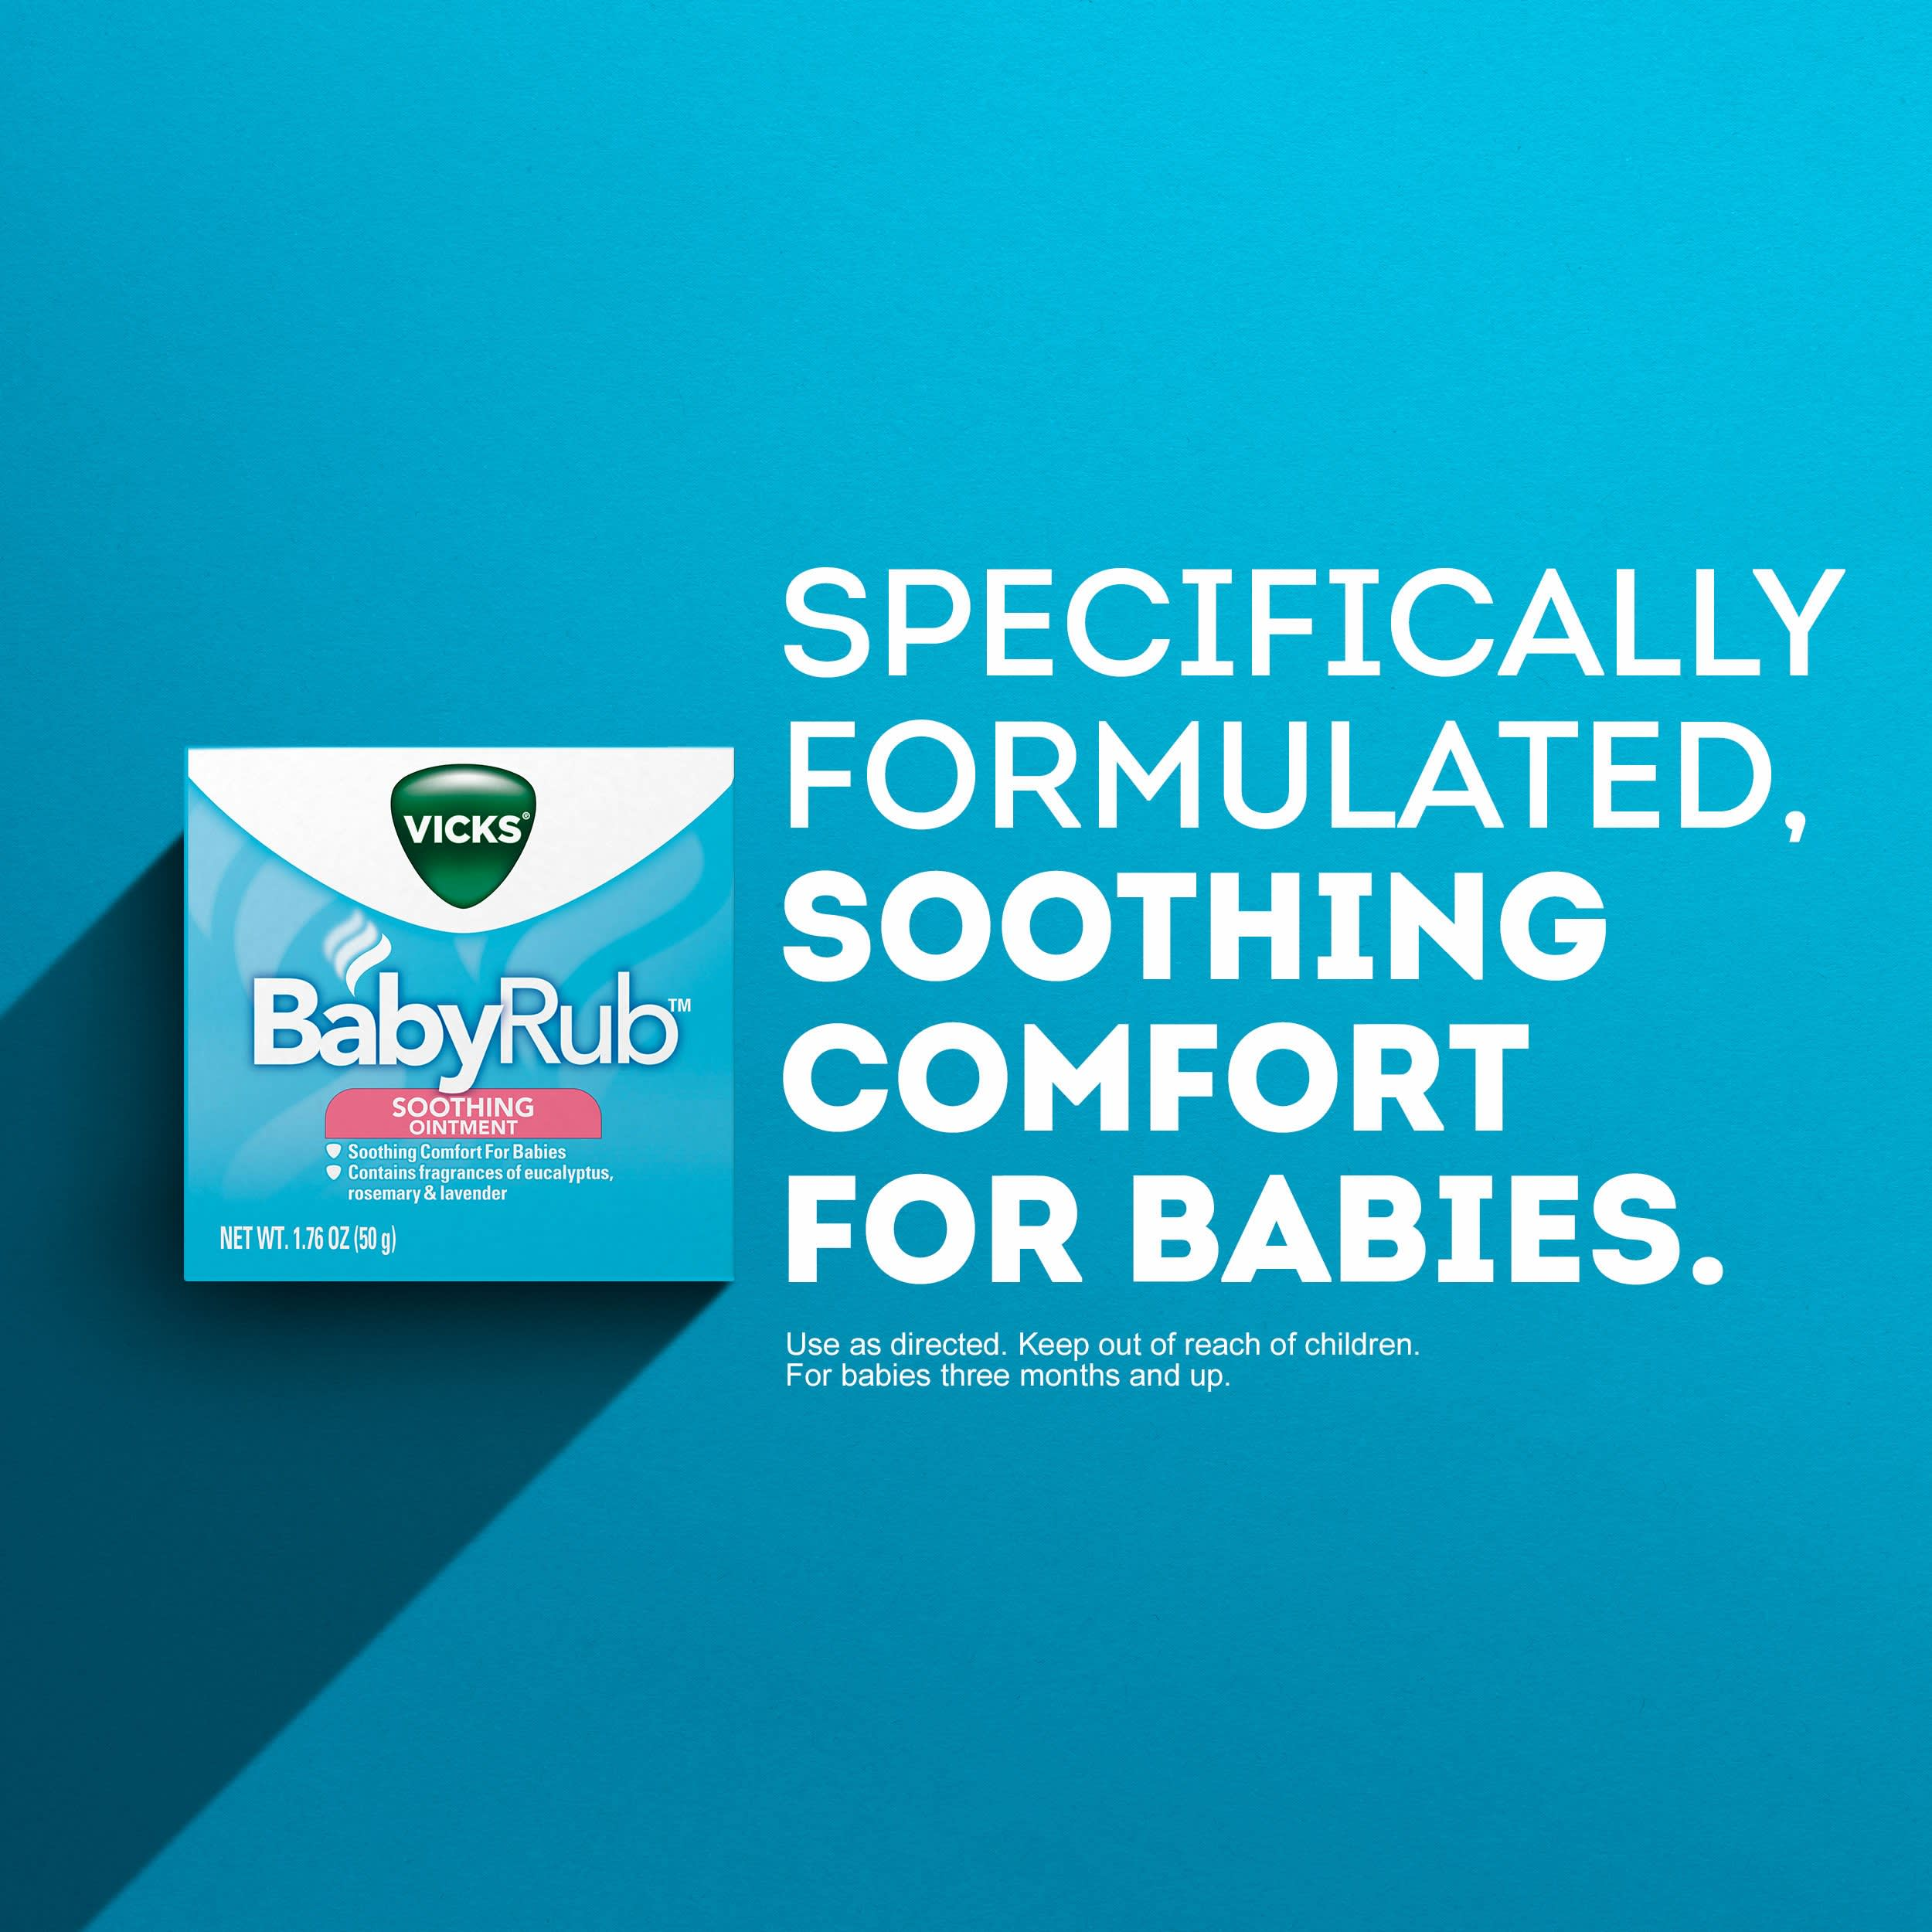 babyrub-soothing-ointment-specifically-formulated-comfort-for-babies